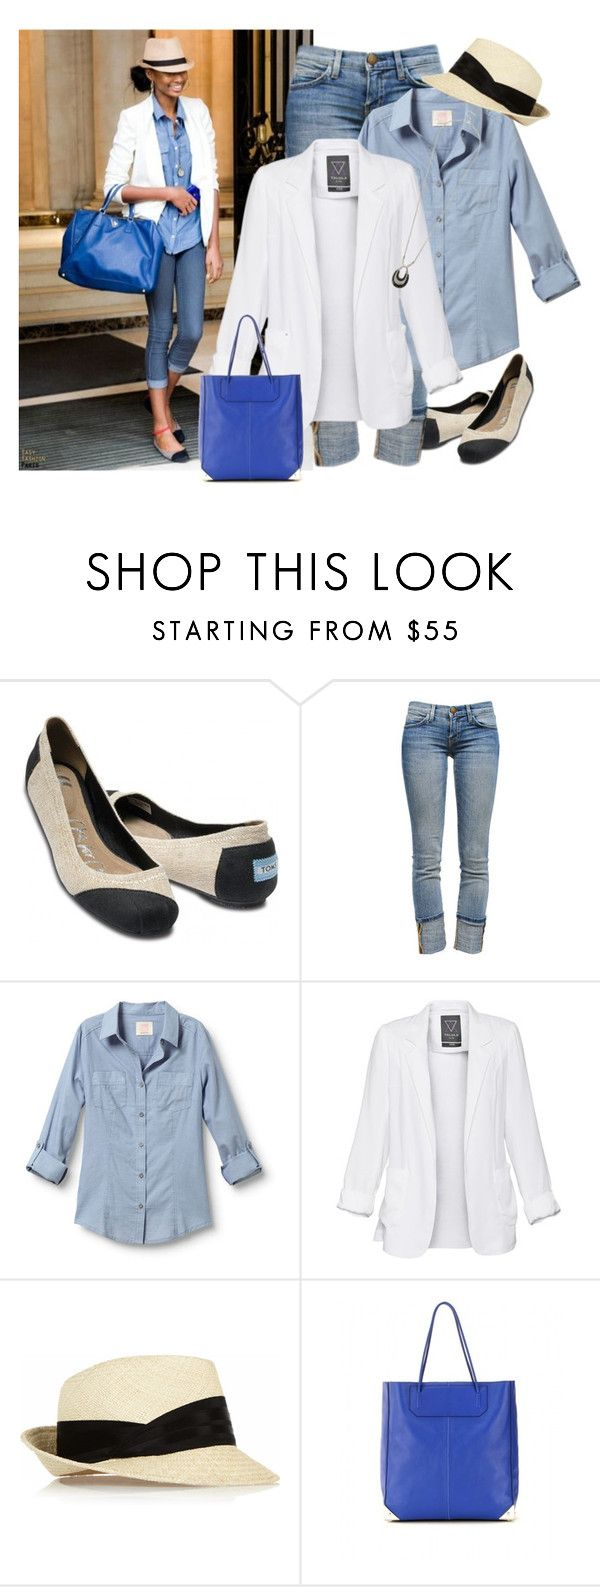 """""""Untitled #404"""" by bonnaroosky ❤ liked on Polyvore featuring TOMS, Current/Elliott, Quiksilver, Talula, Eugenia Kim, Alexander Wang, Oasis, fedora hats, long pendant necklaces and cobalt blue"""